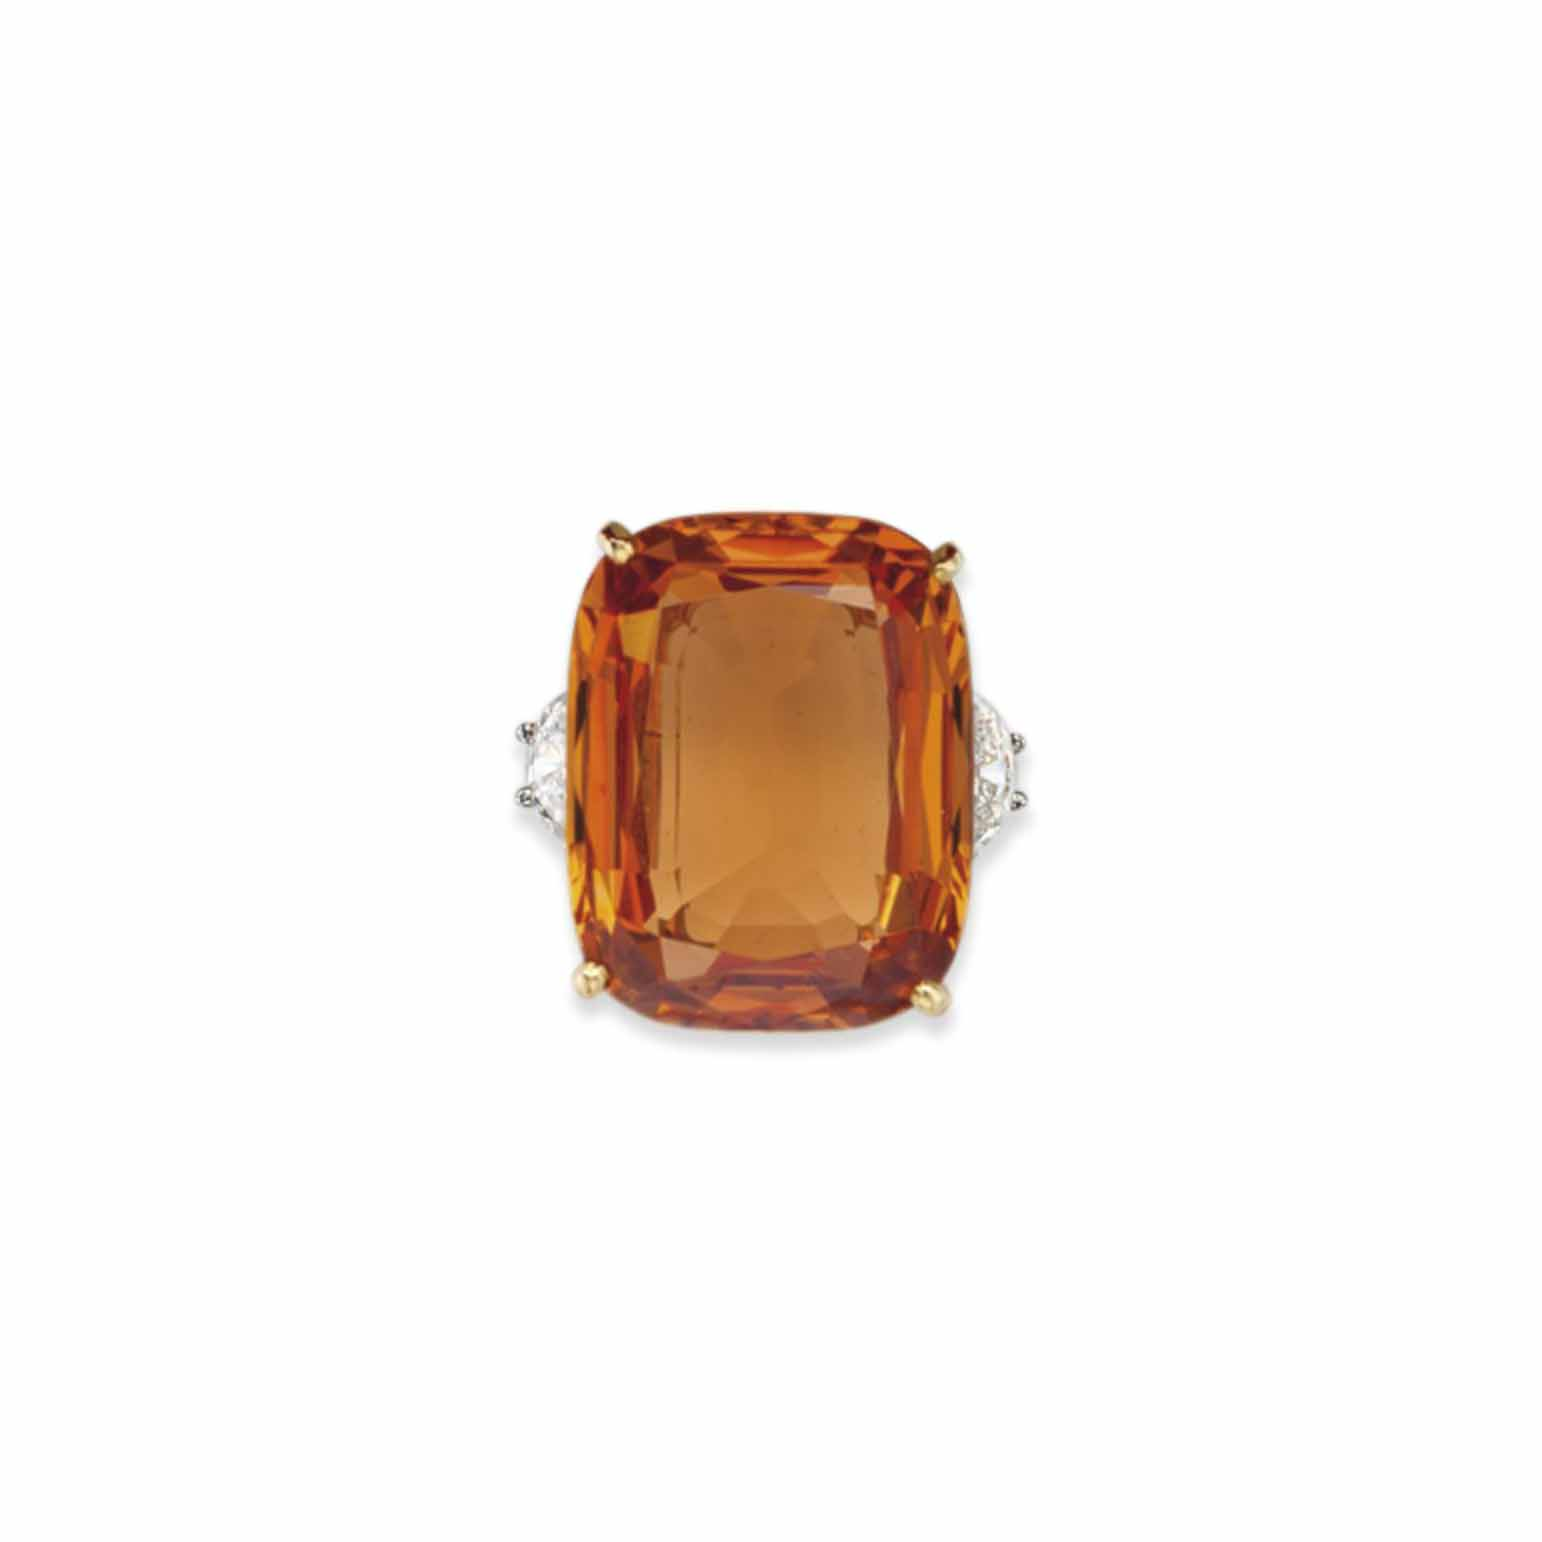 A TOPAZ AND DIAMOND RING, BY C